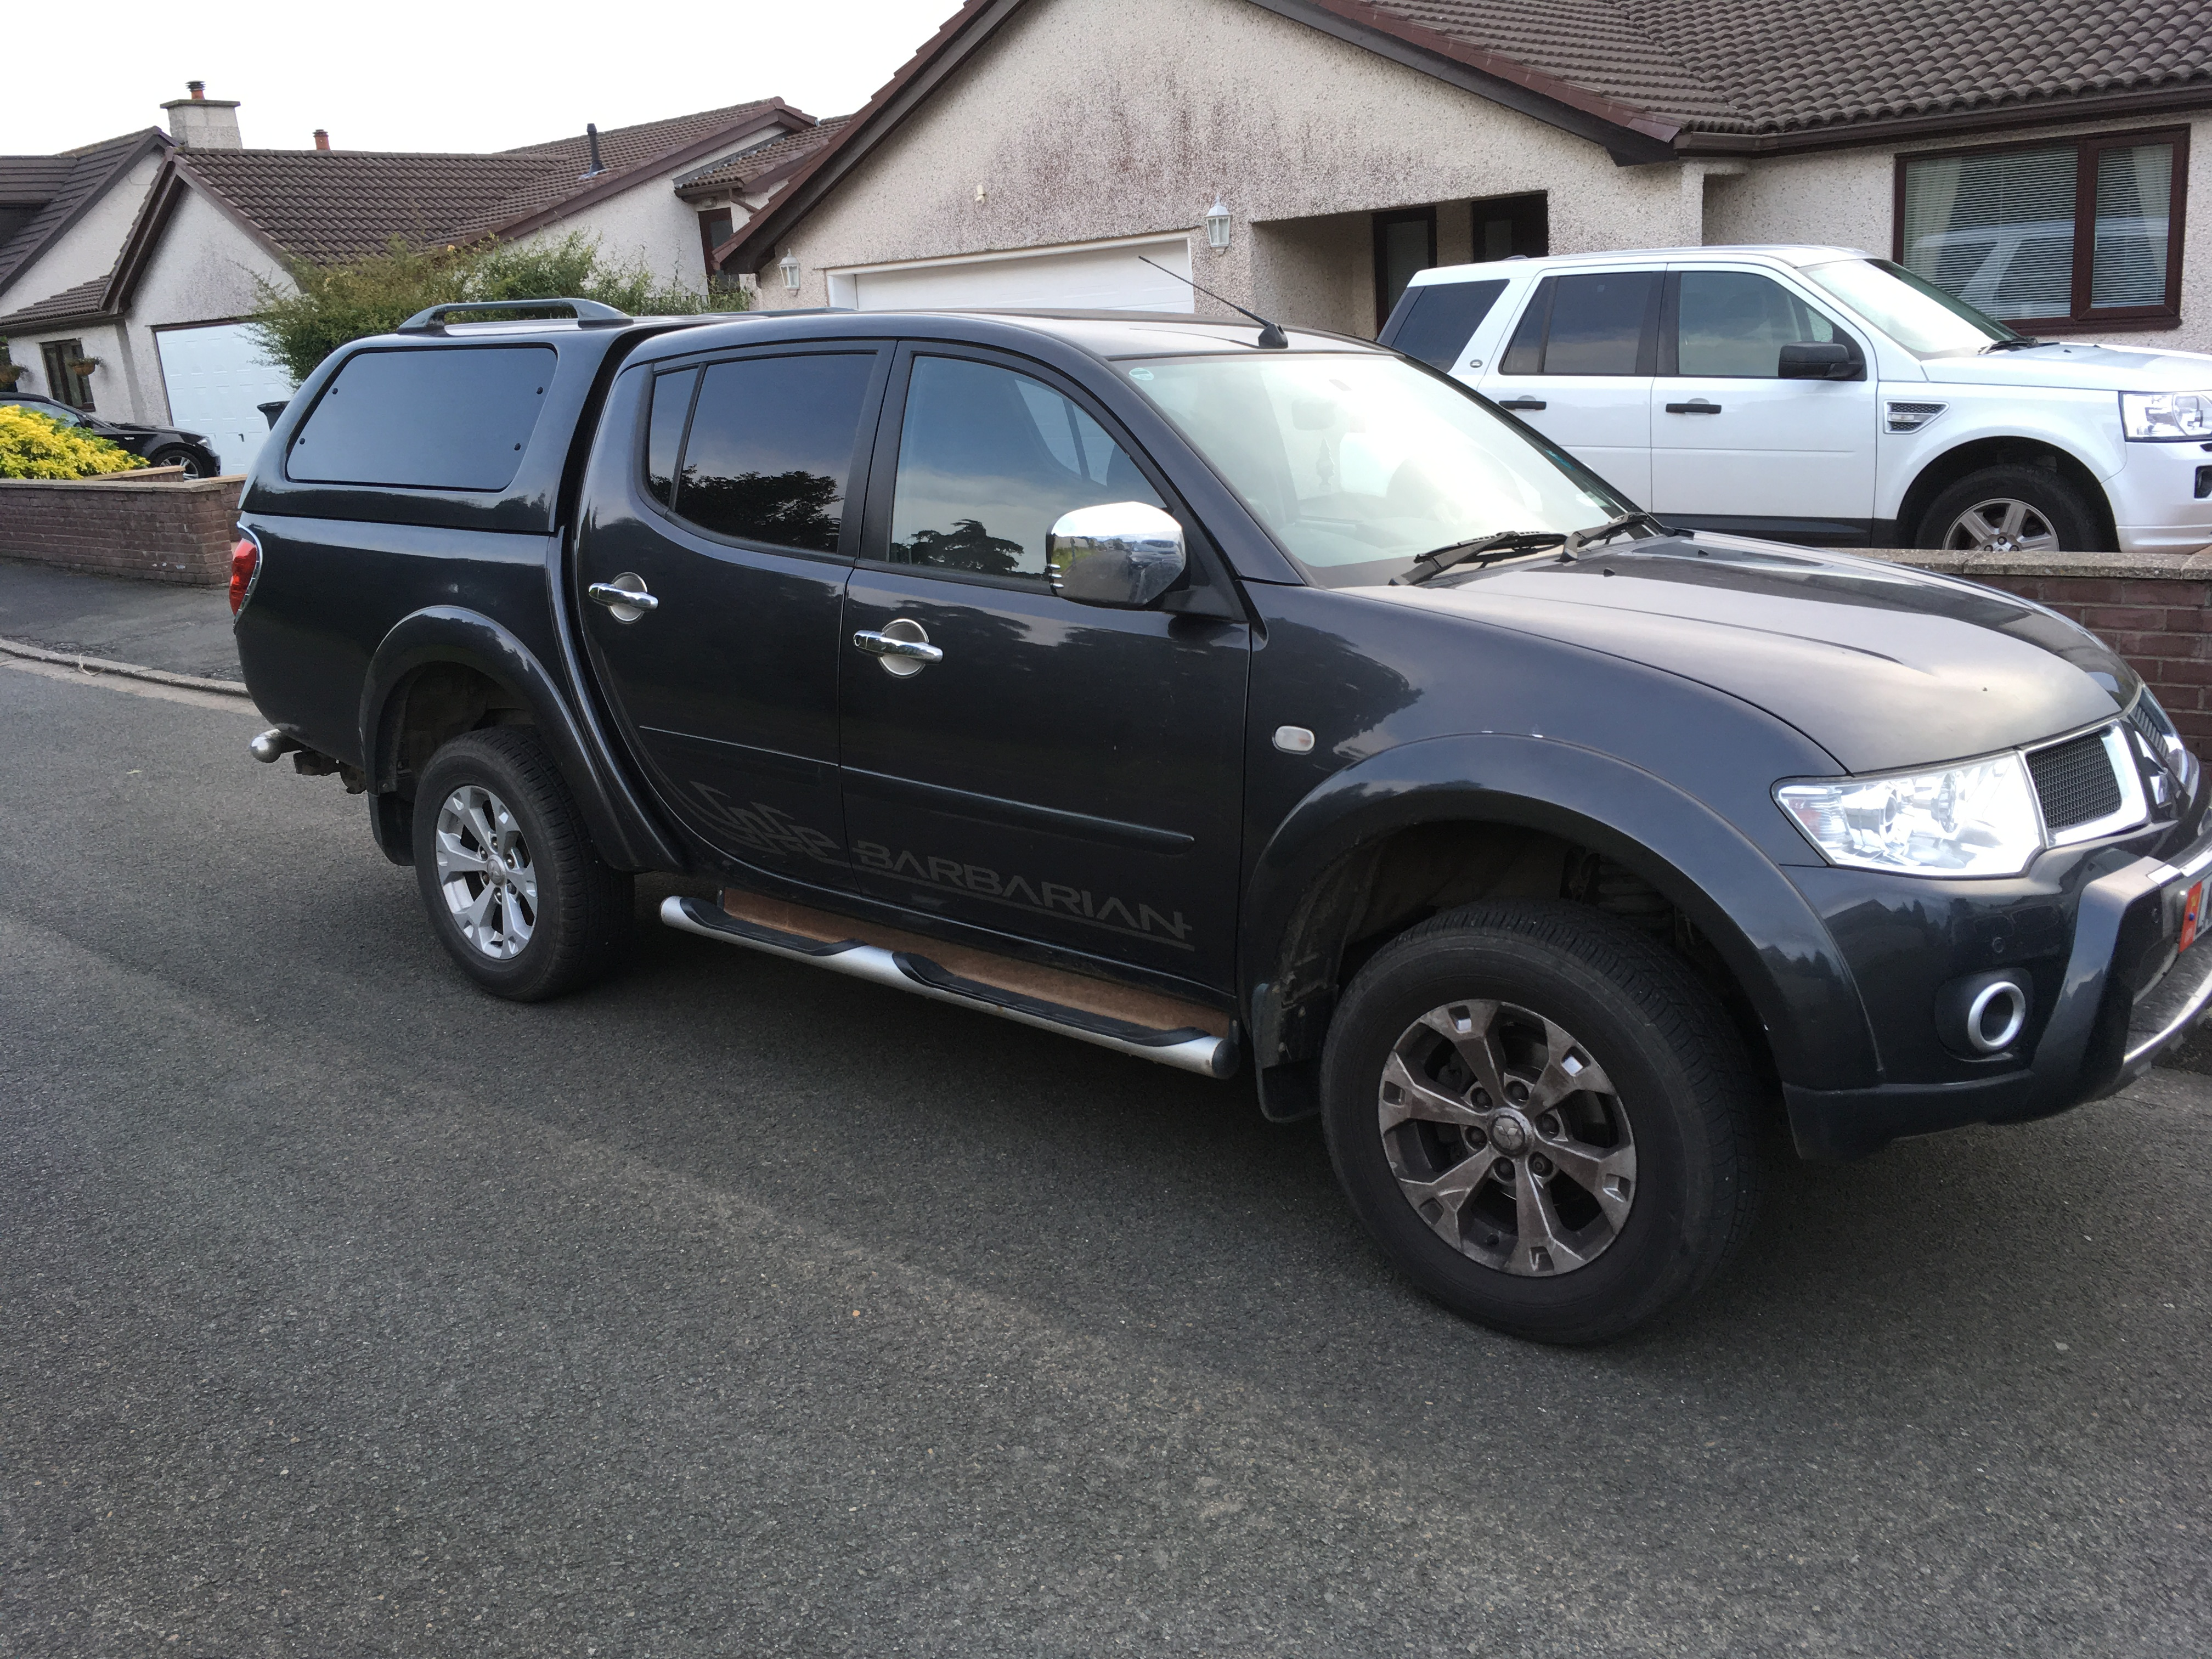 Mitsubishi L200 Barbarian 2477 from private